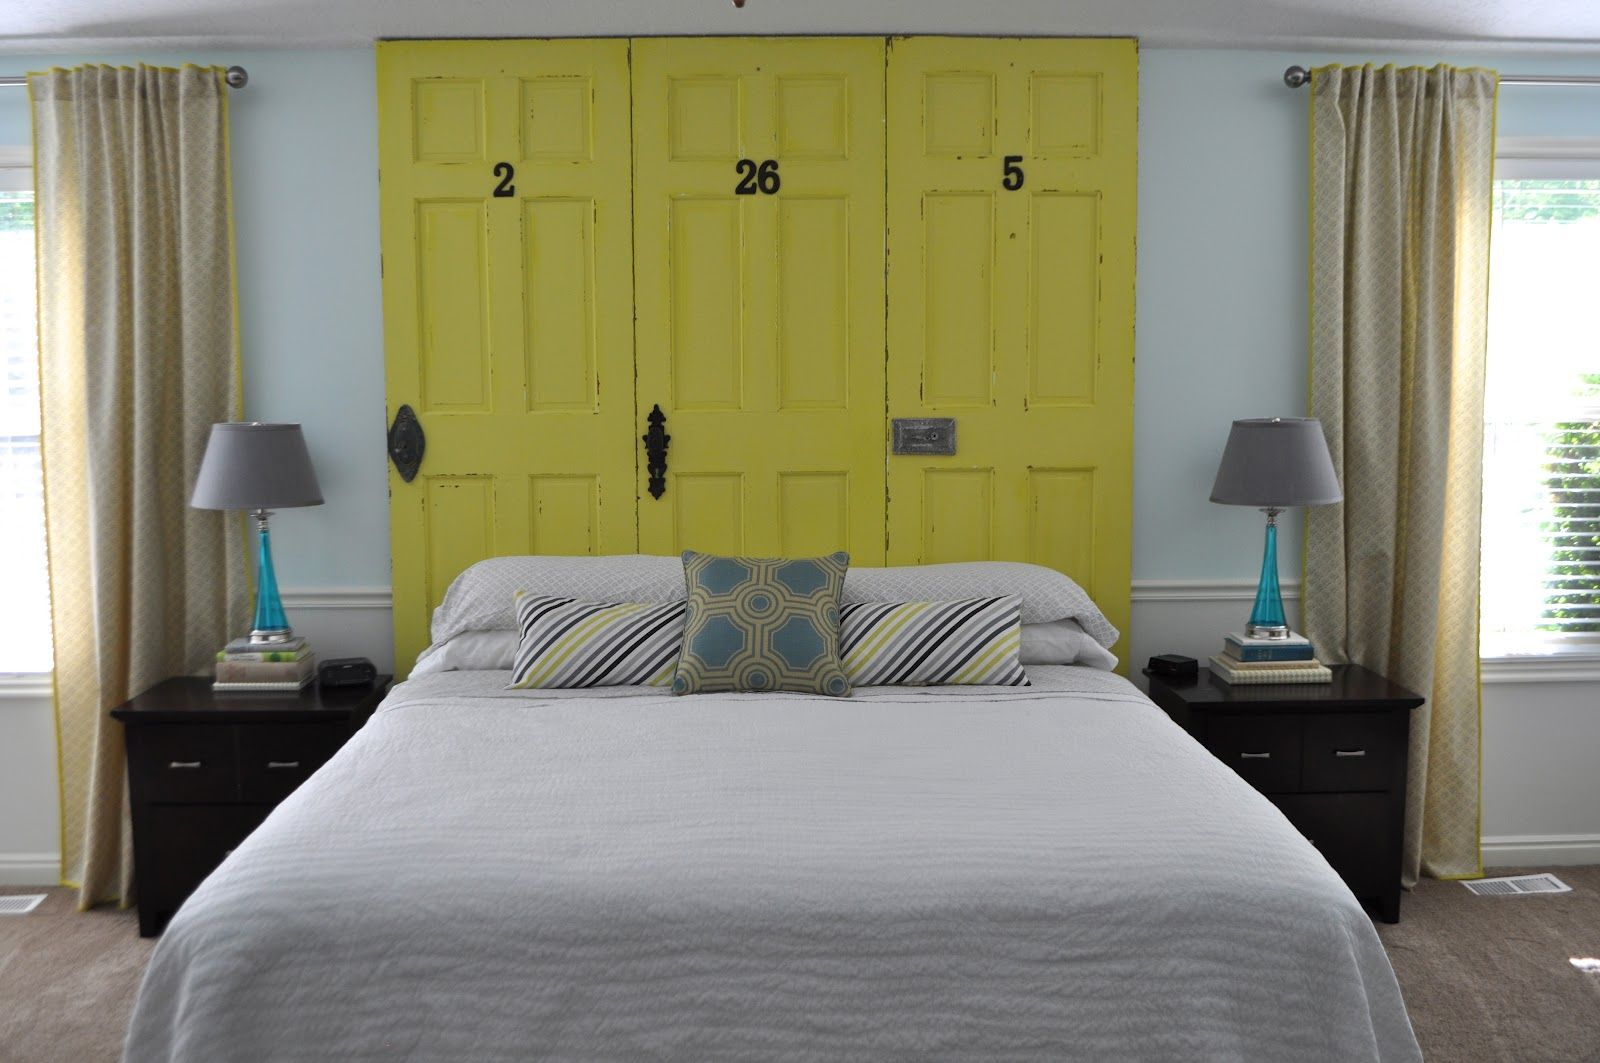 using old doors for headboards - Yahoo Search Results Yahoo Image ...